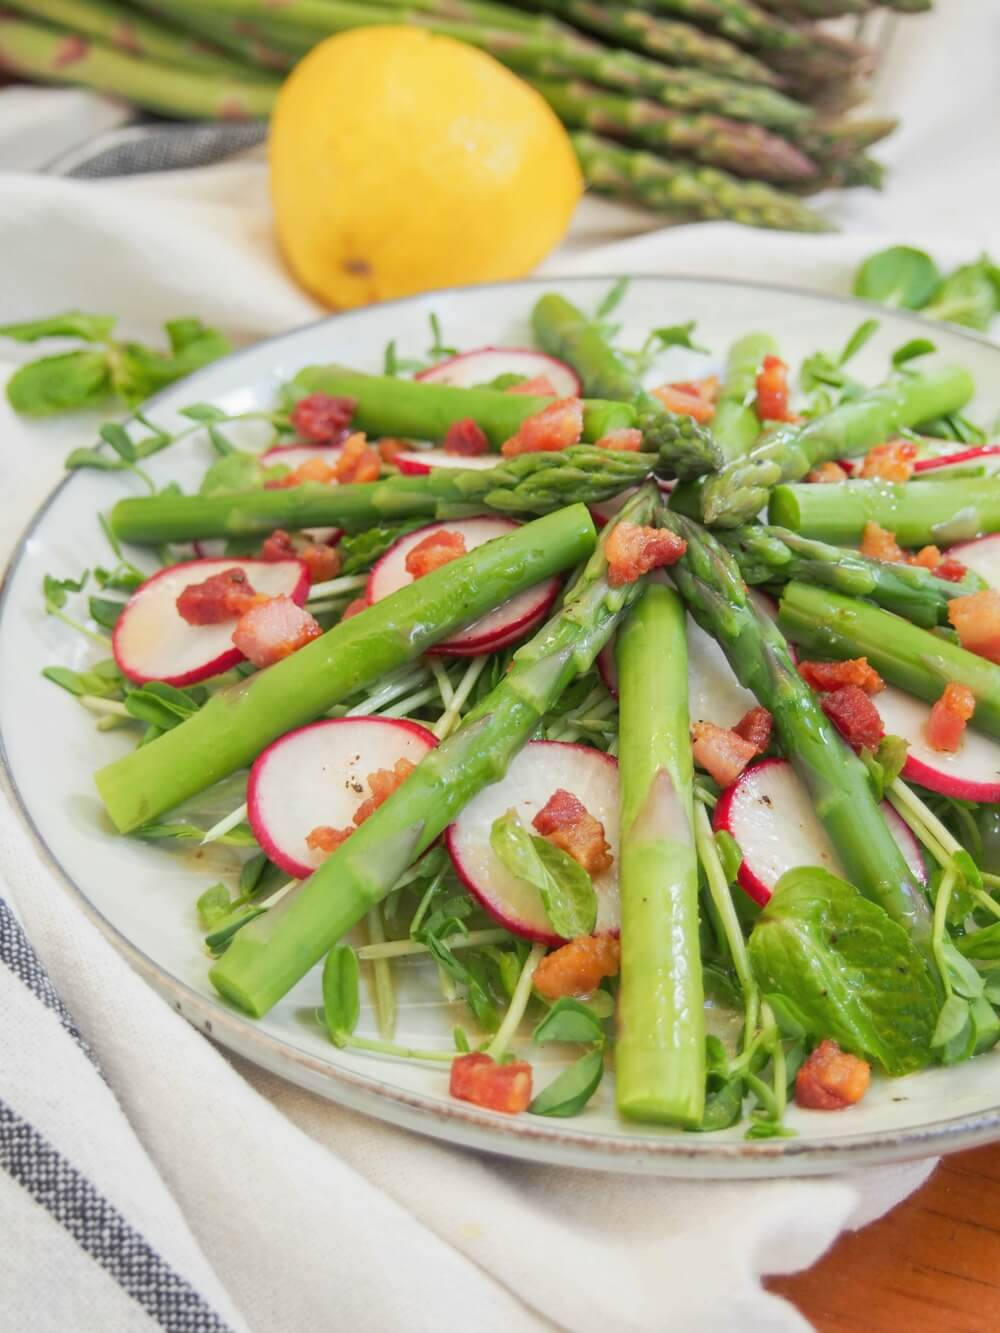 Asparagus salad with pea shoots and pancetta